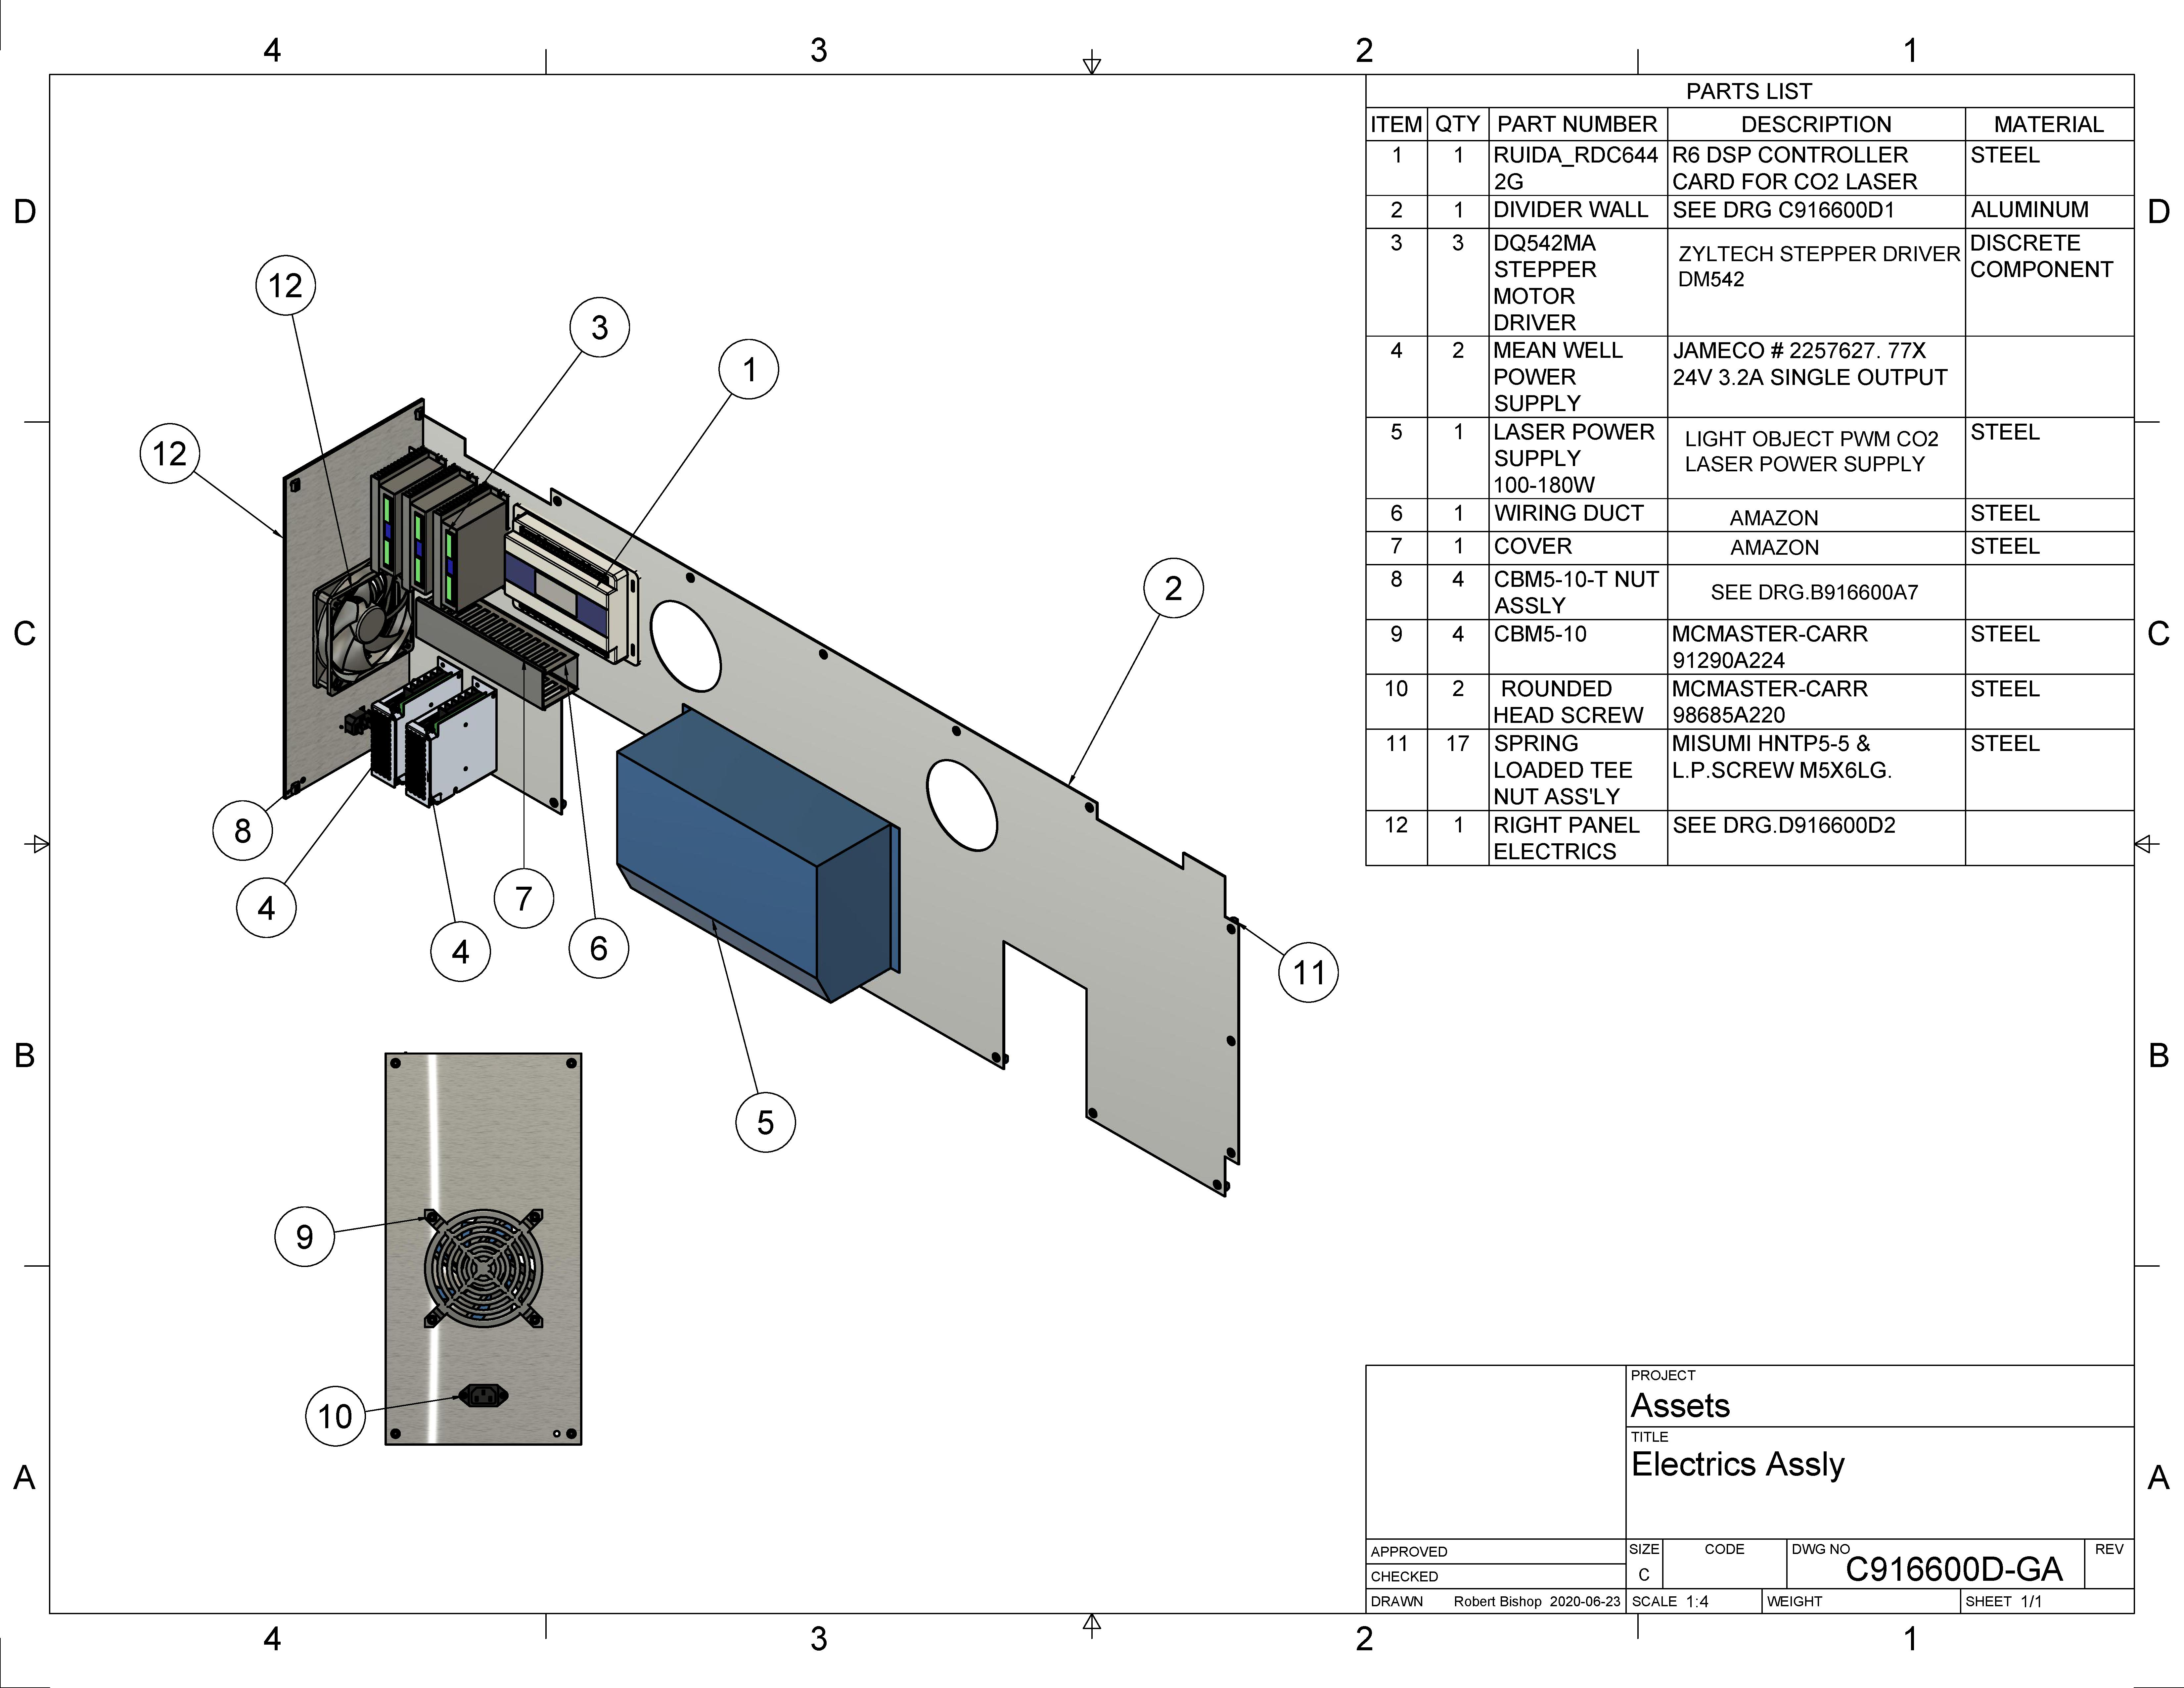 Laser Cutter-Electrics assembly drawing